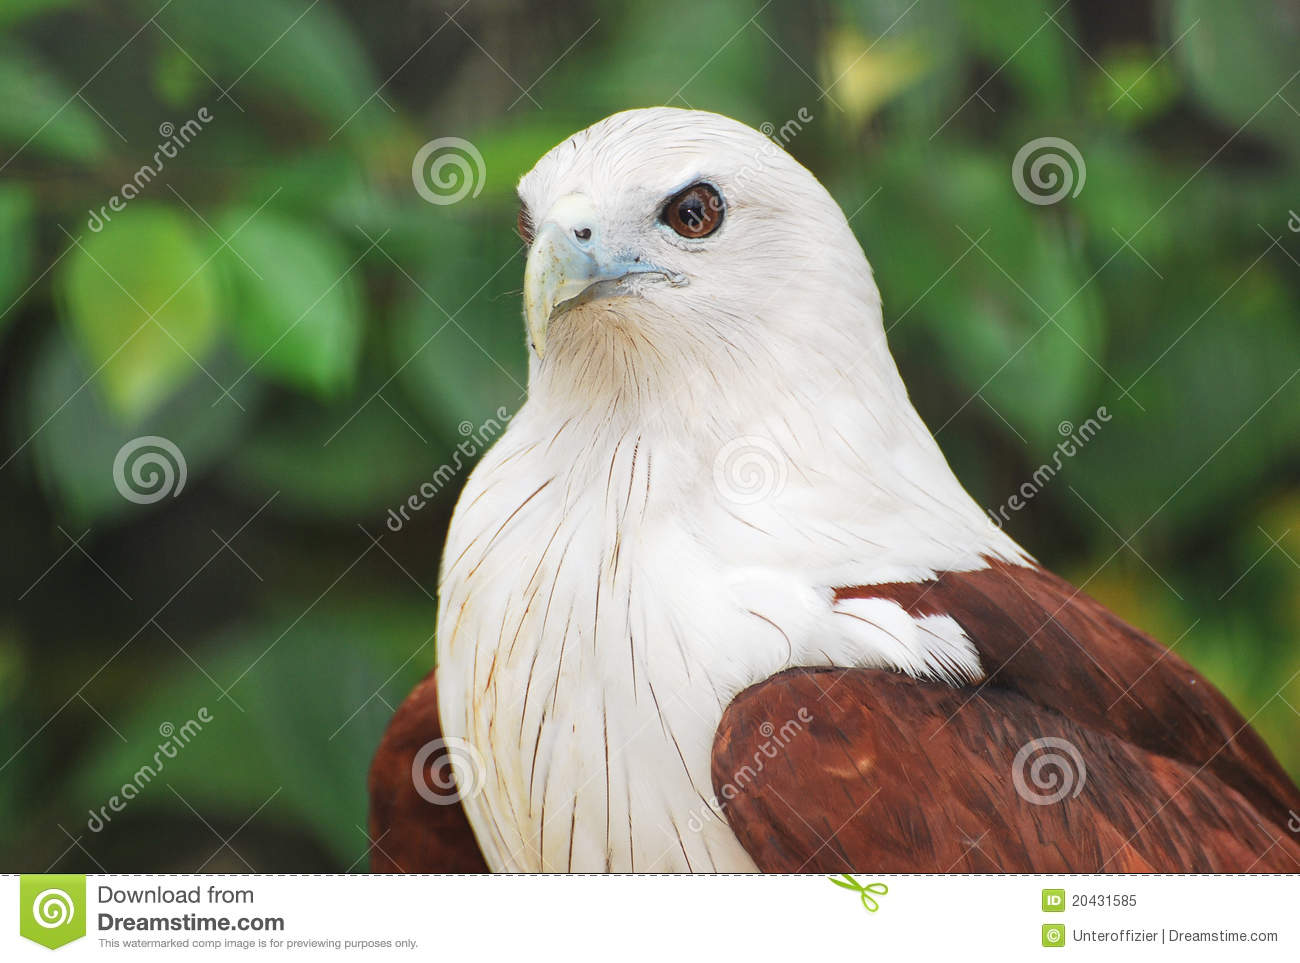 Brahminy Kite clipart #11, Download drawings